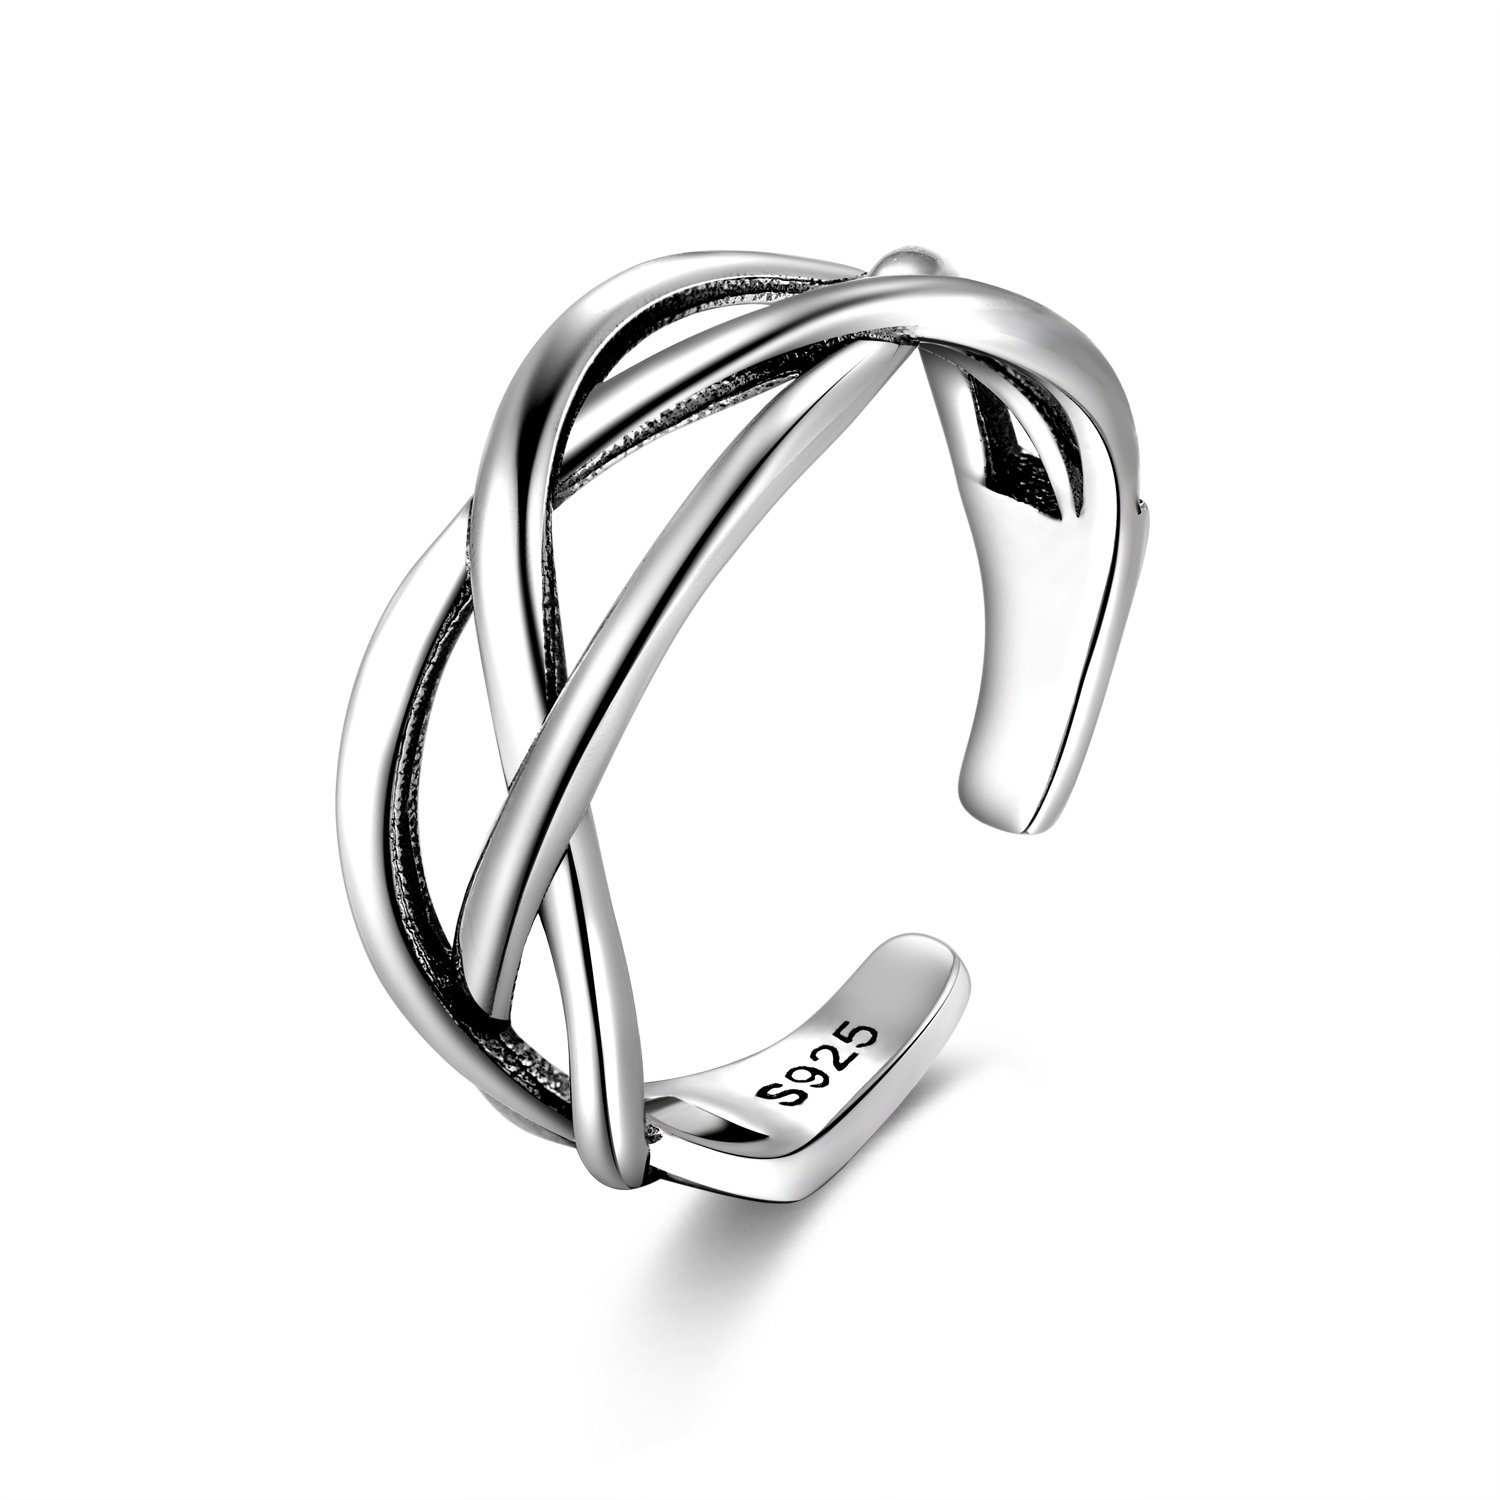 Candyfancy Love Celtic knot ring 925 Sterling Silver Open toe ring Adjustable For Women Girls size 4-6 (Three lines crossed)